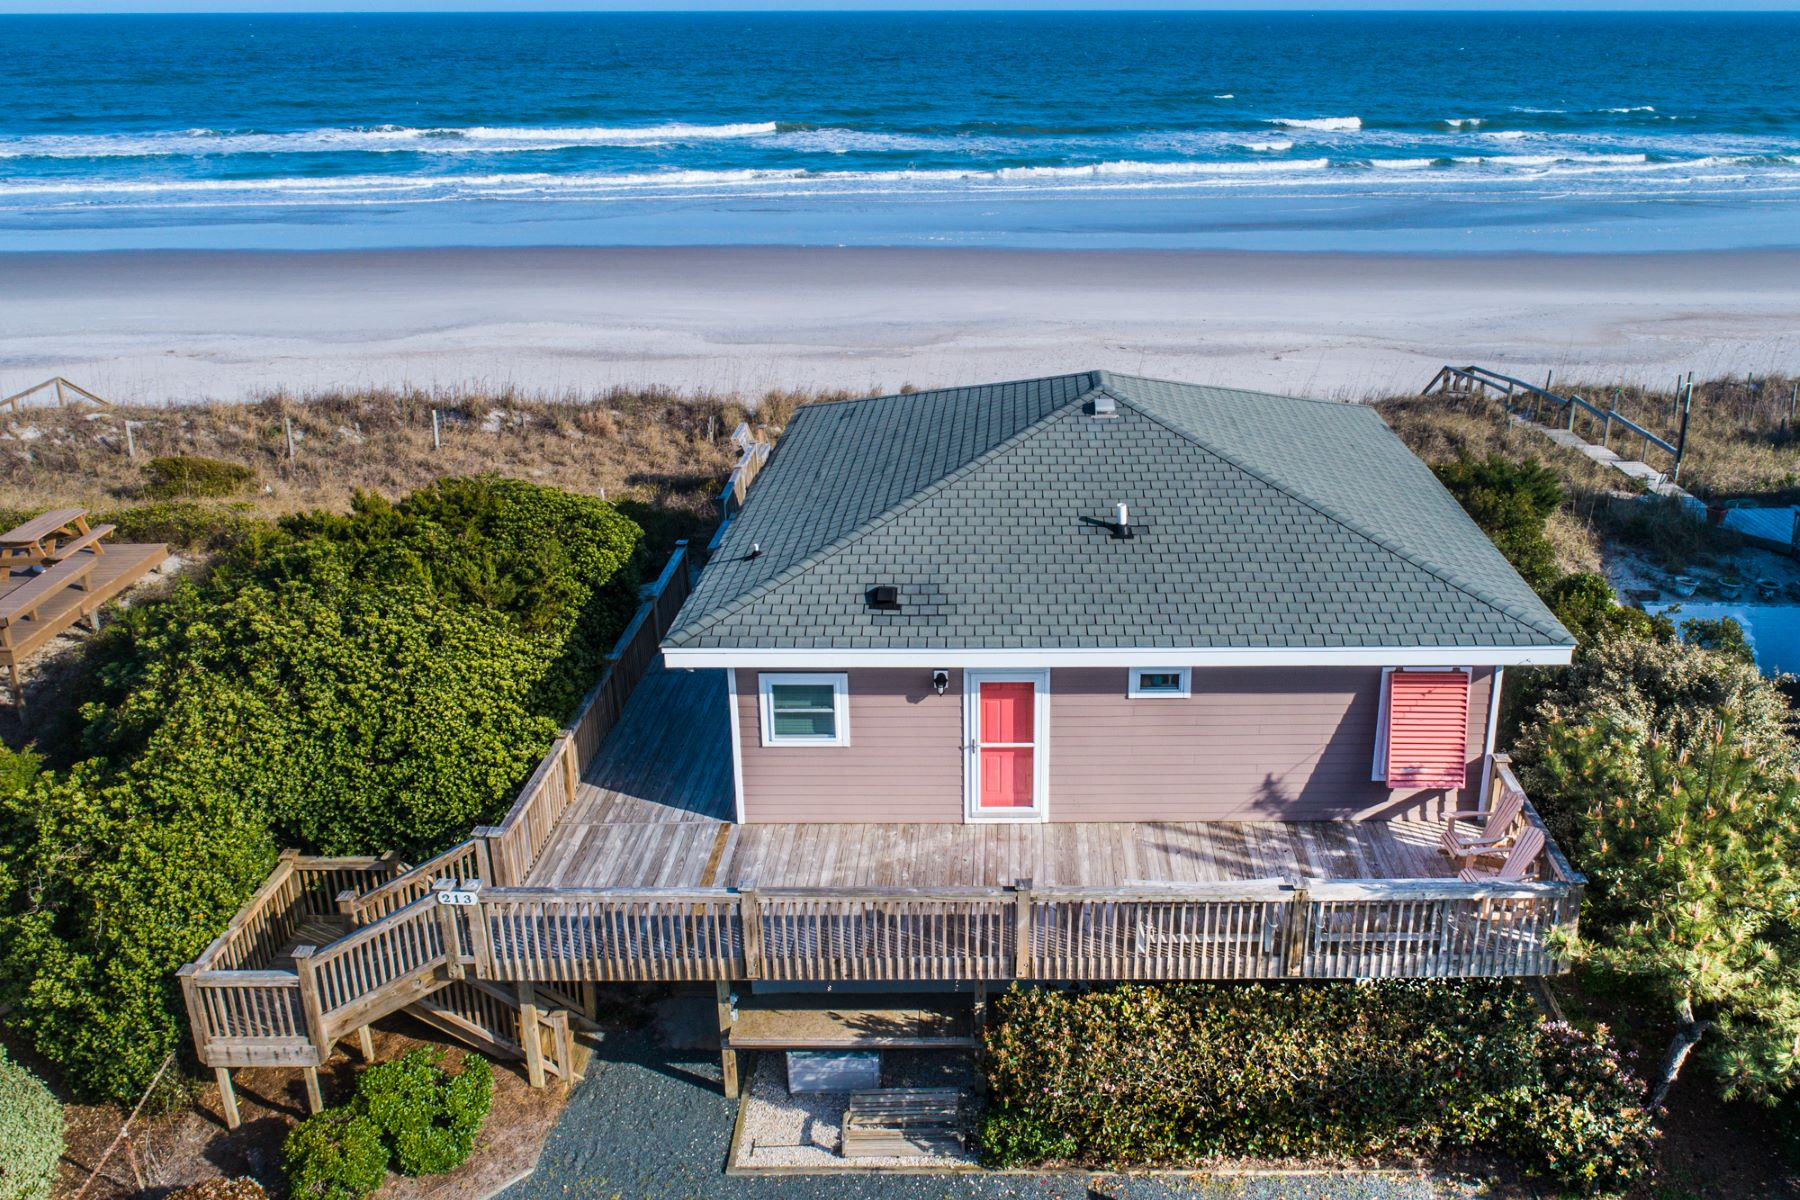 Single Family Home for Sale at Unique Beachfront Vintage Cottages 213 S Anderson Blvd A&B, Topsail Beach, North Carolina, 28445 United States